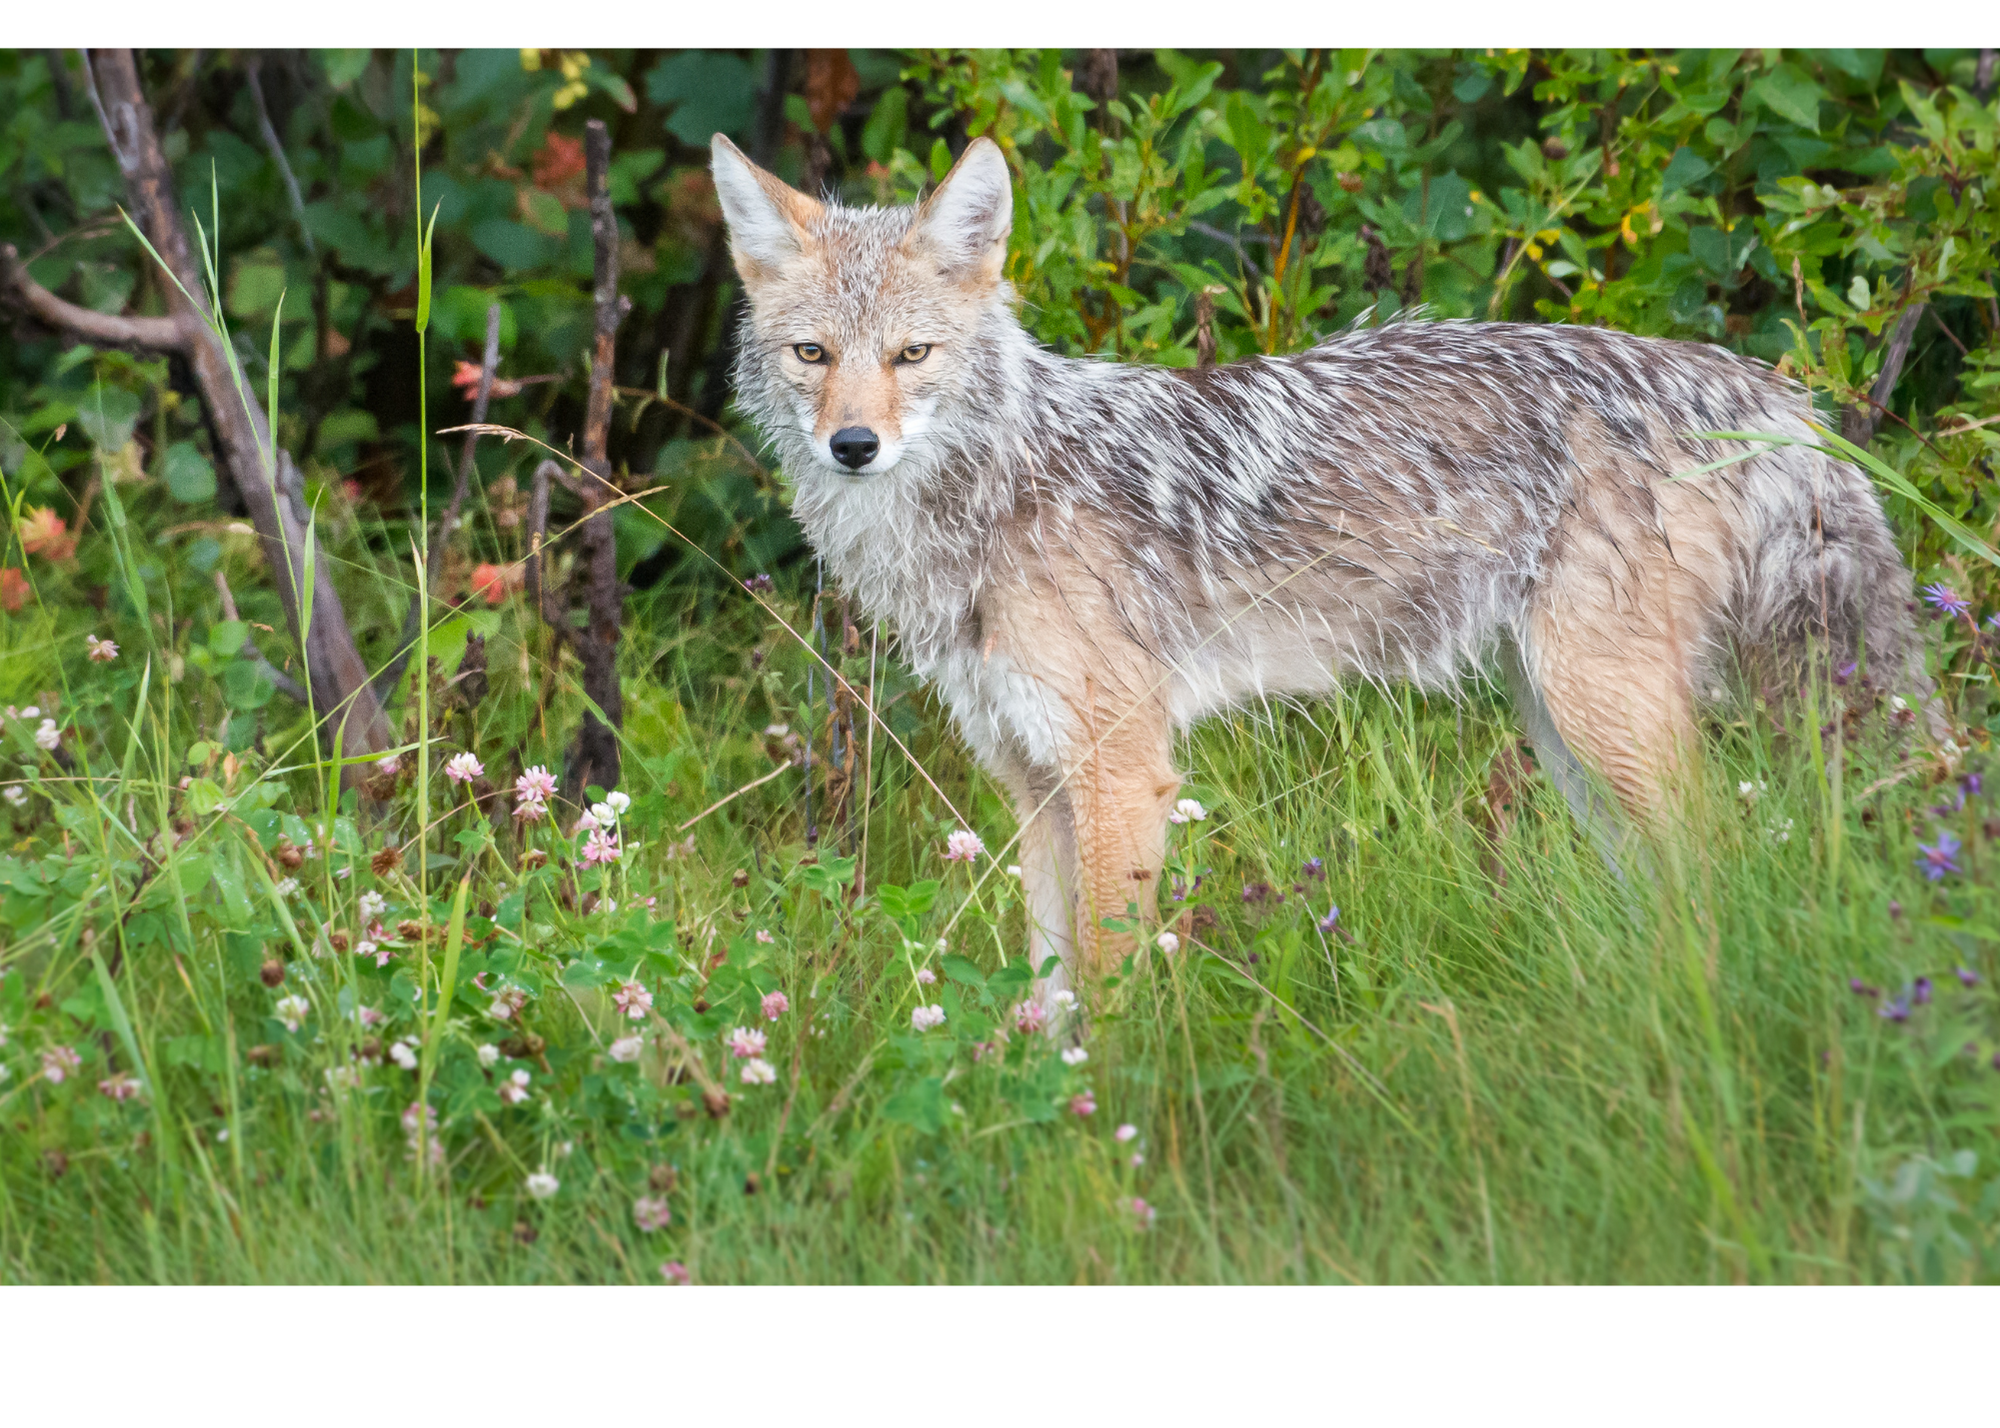 image of a coyote